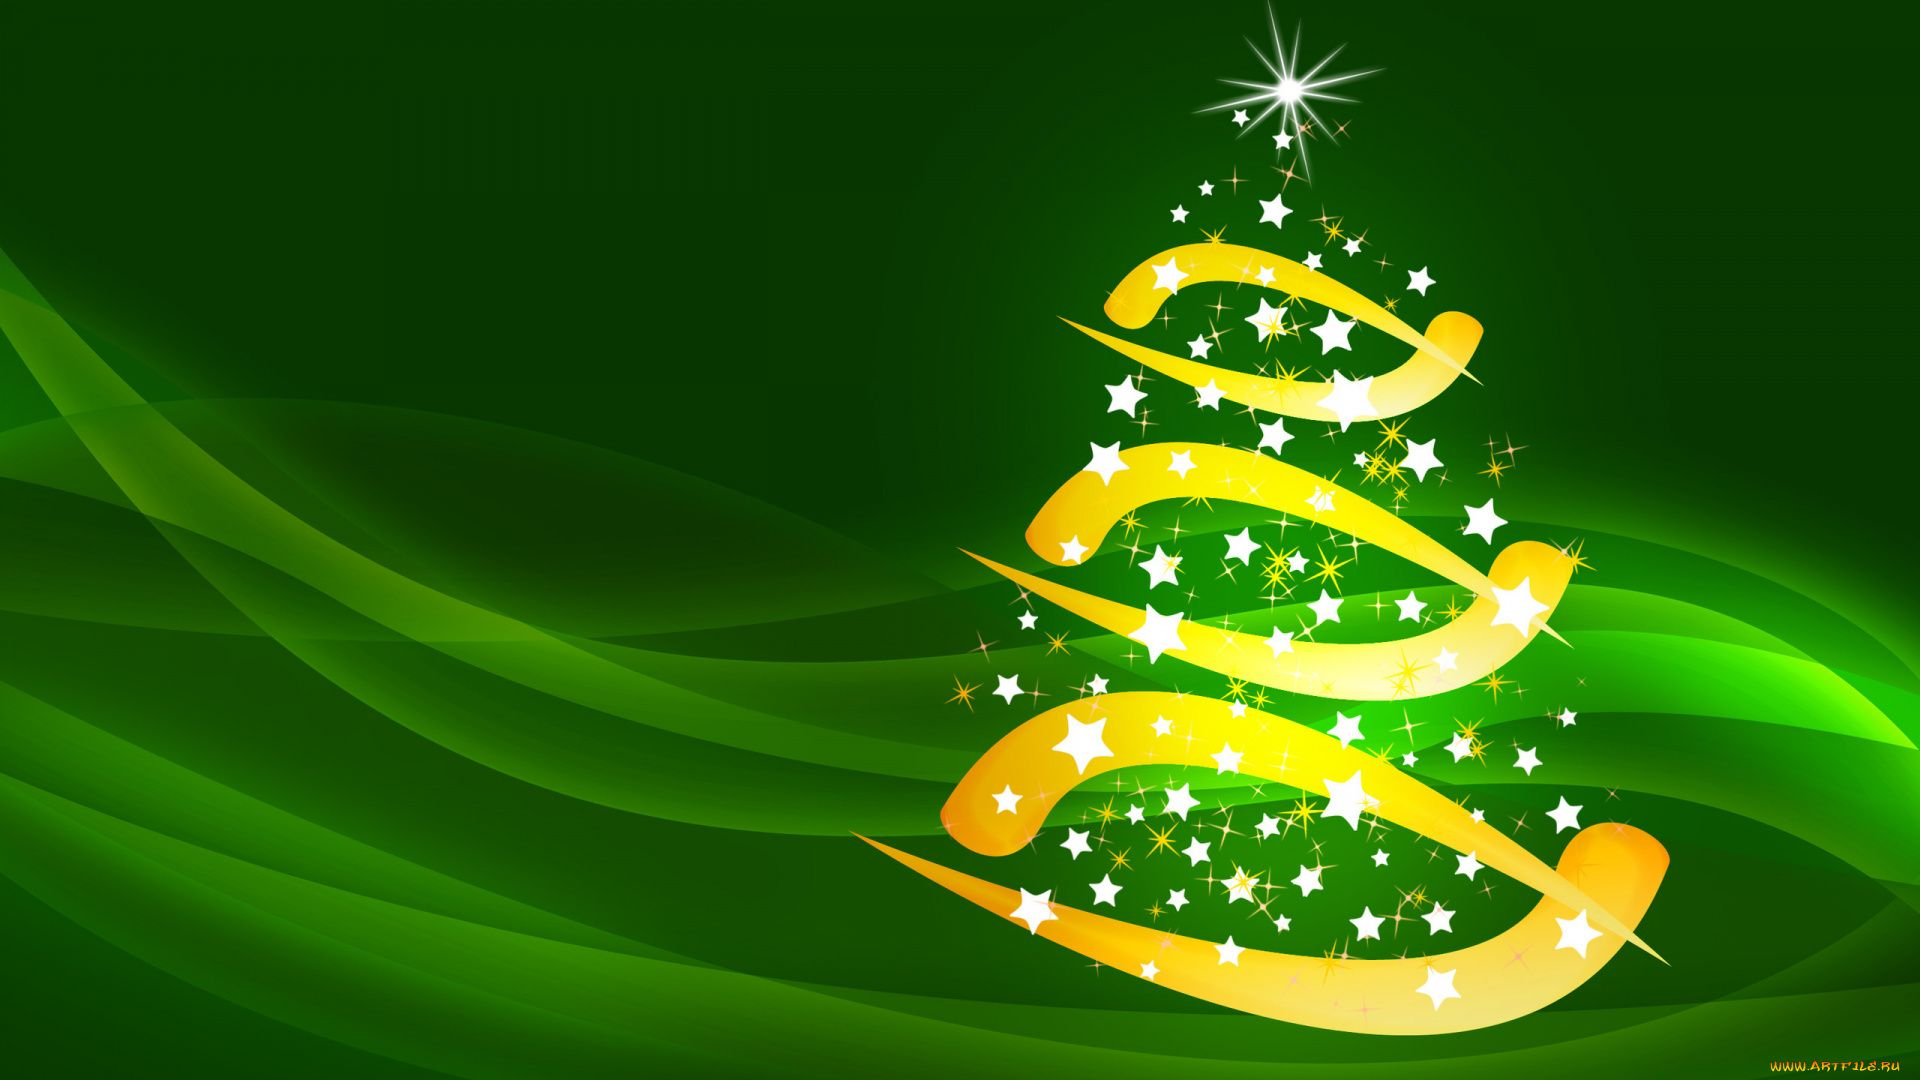 Green Christmas Free Wallpaper and Background